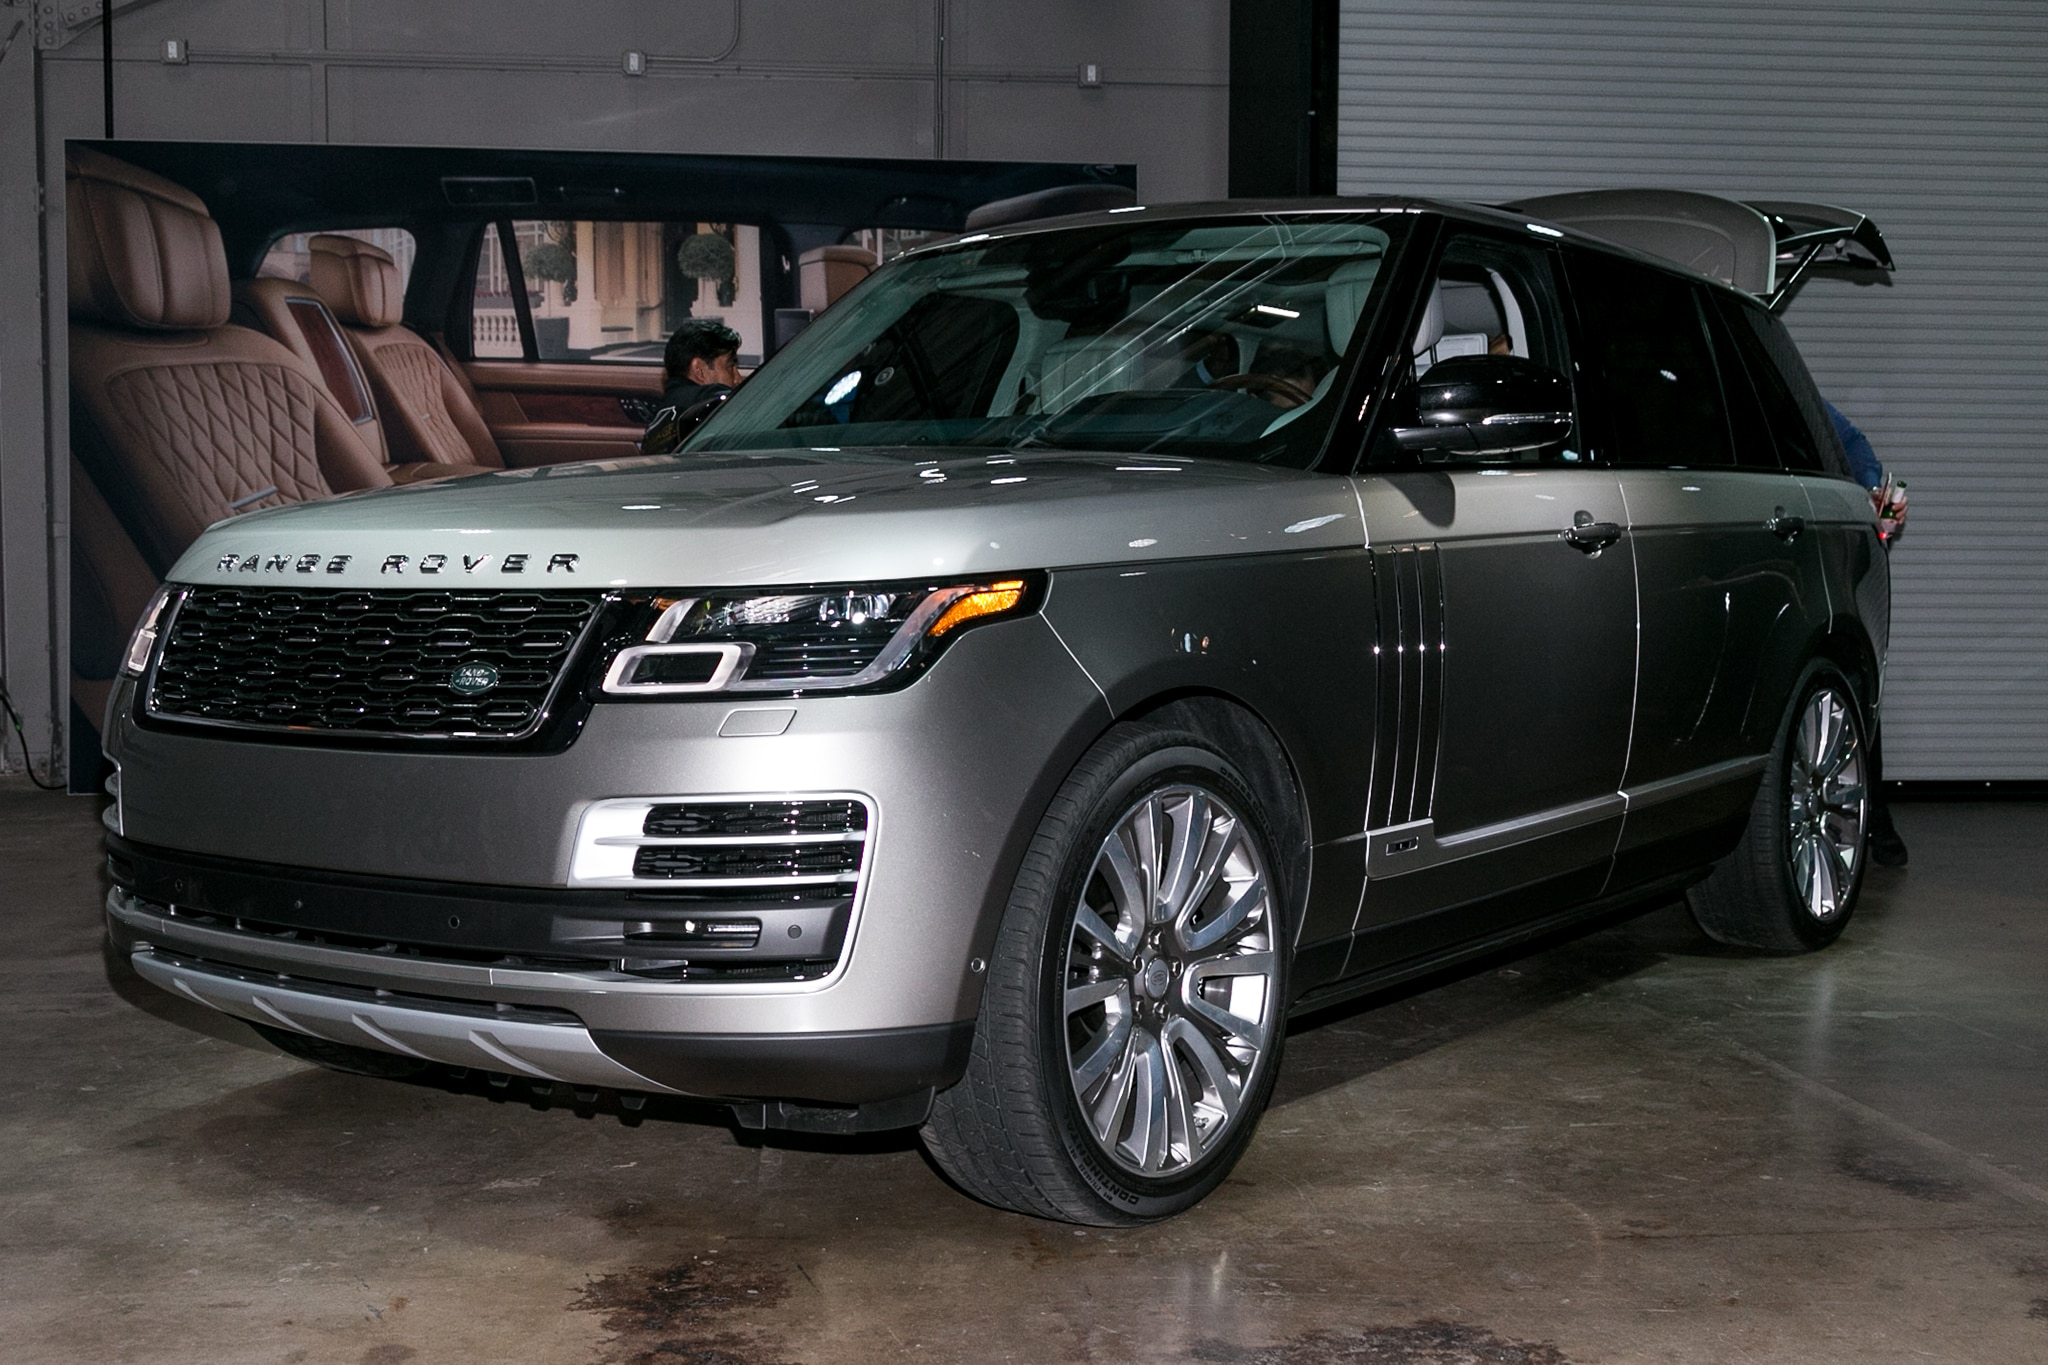 land rover shows off updated 2018 range rover svautobiography automobile magazine. Black Bedroom Furniture Sets. Home Design Ideas